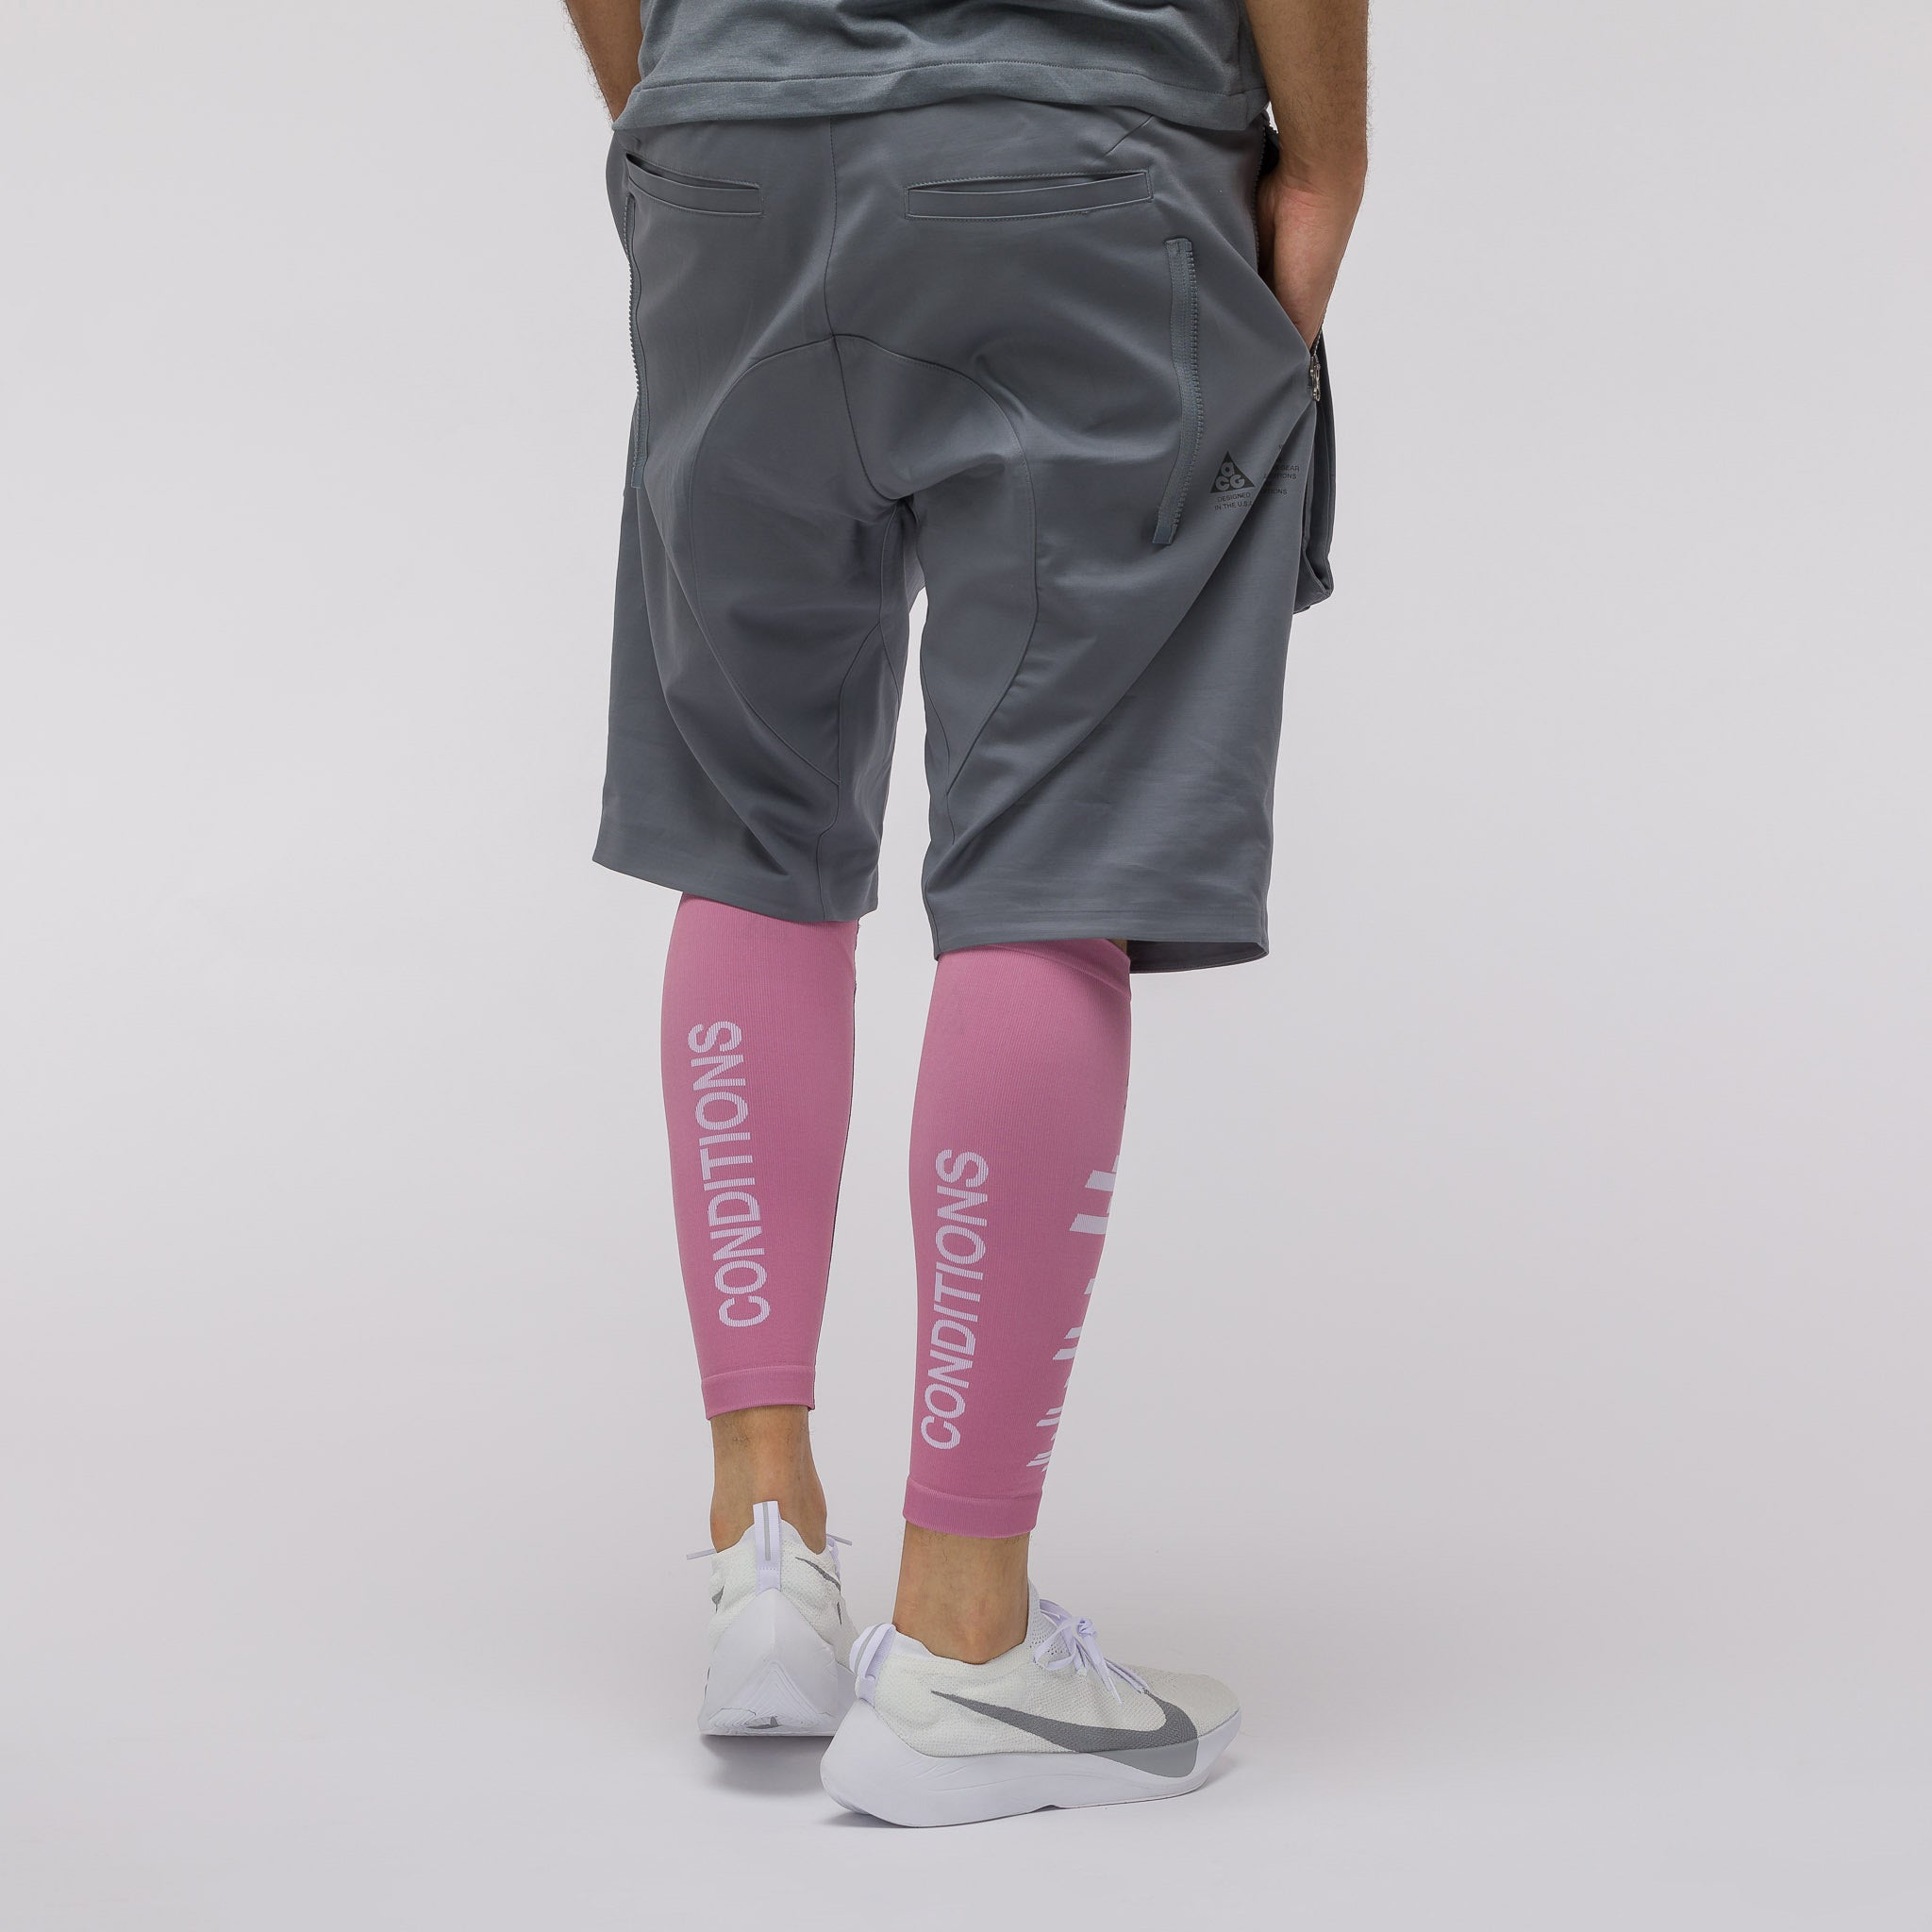 ACG Compression Leg Sleeves in Elemental Pink